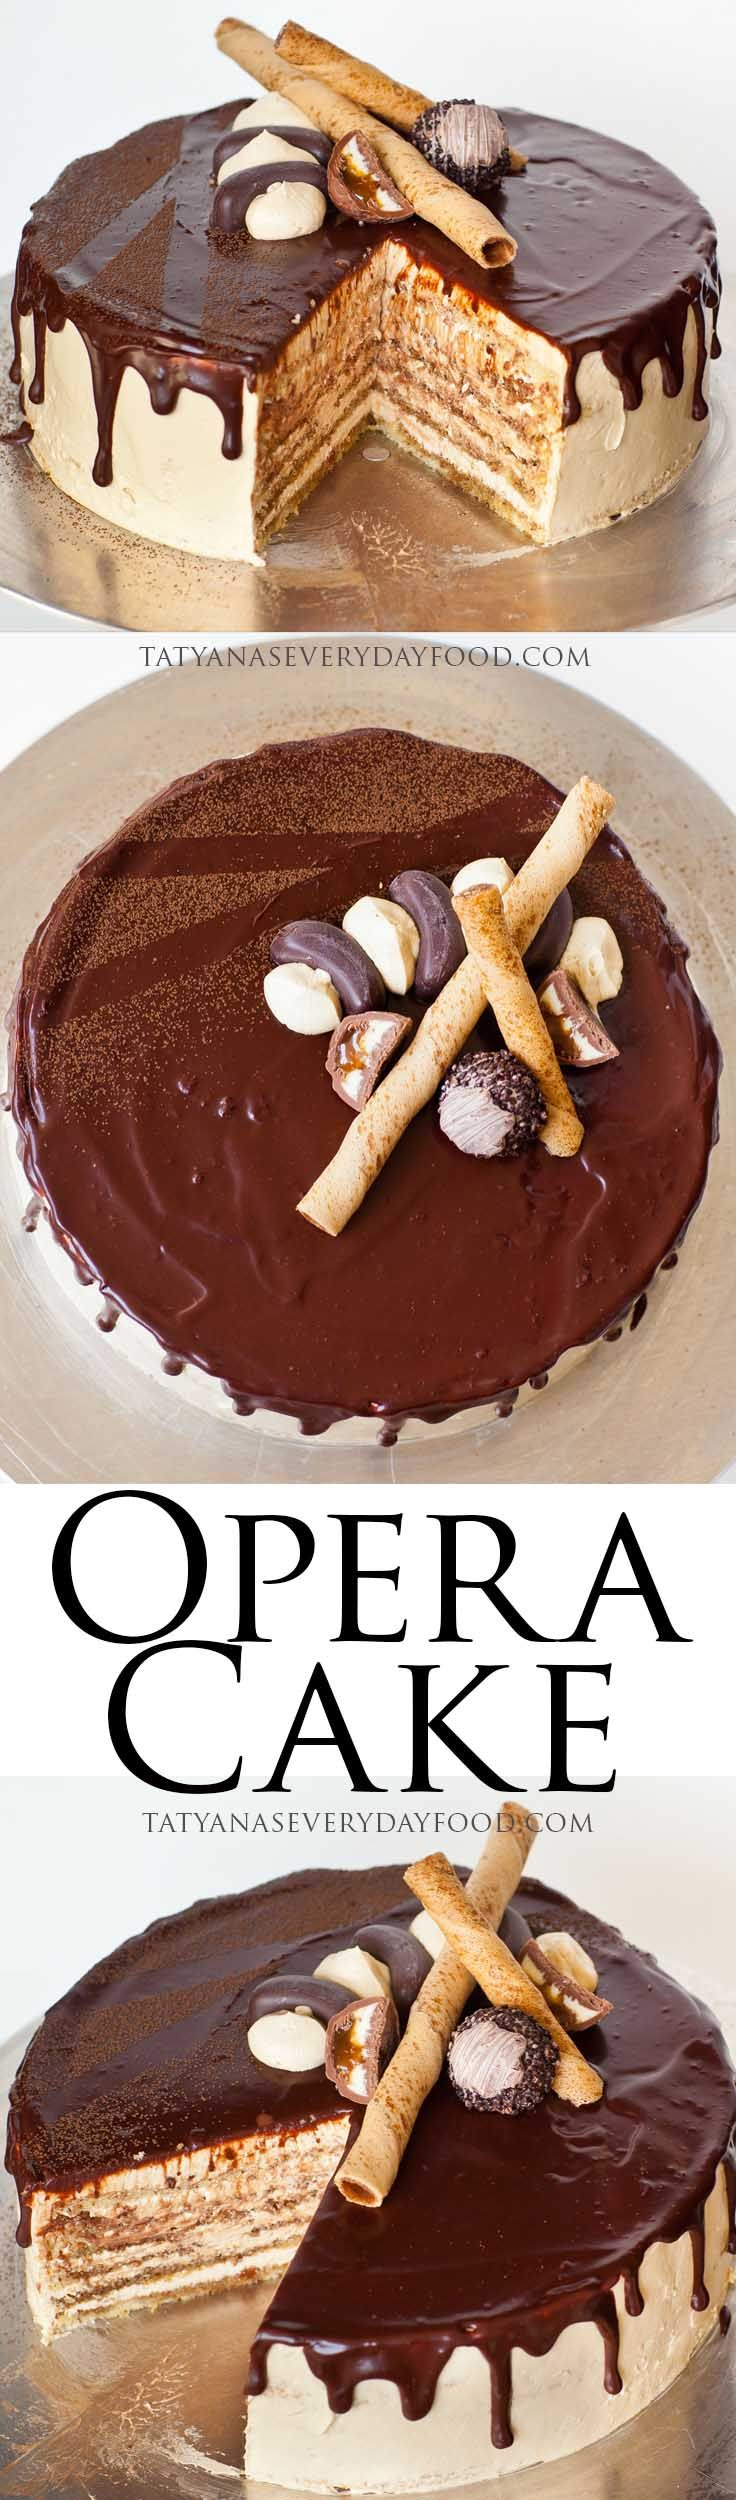 Opera Cake video recipe - elegant, amazingly delicious cake!